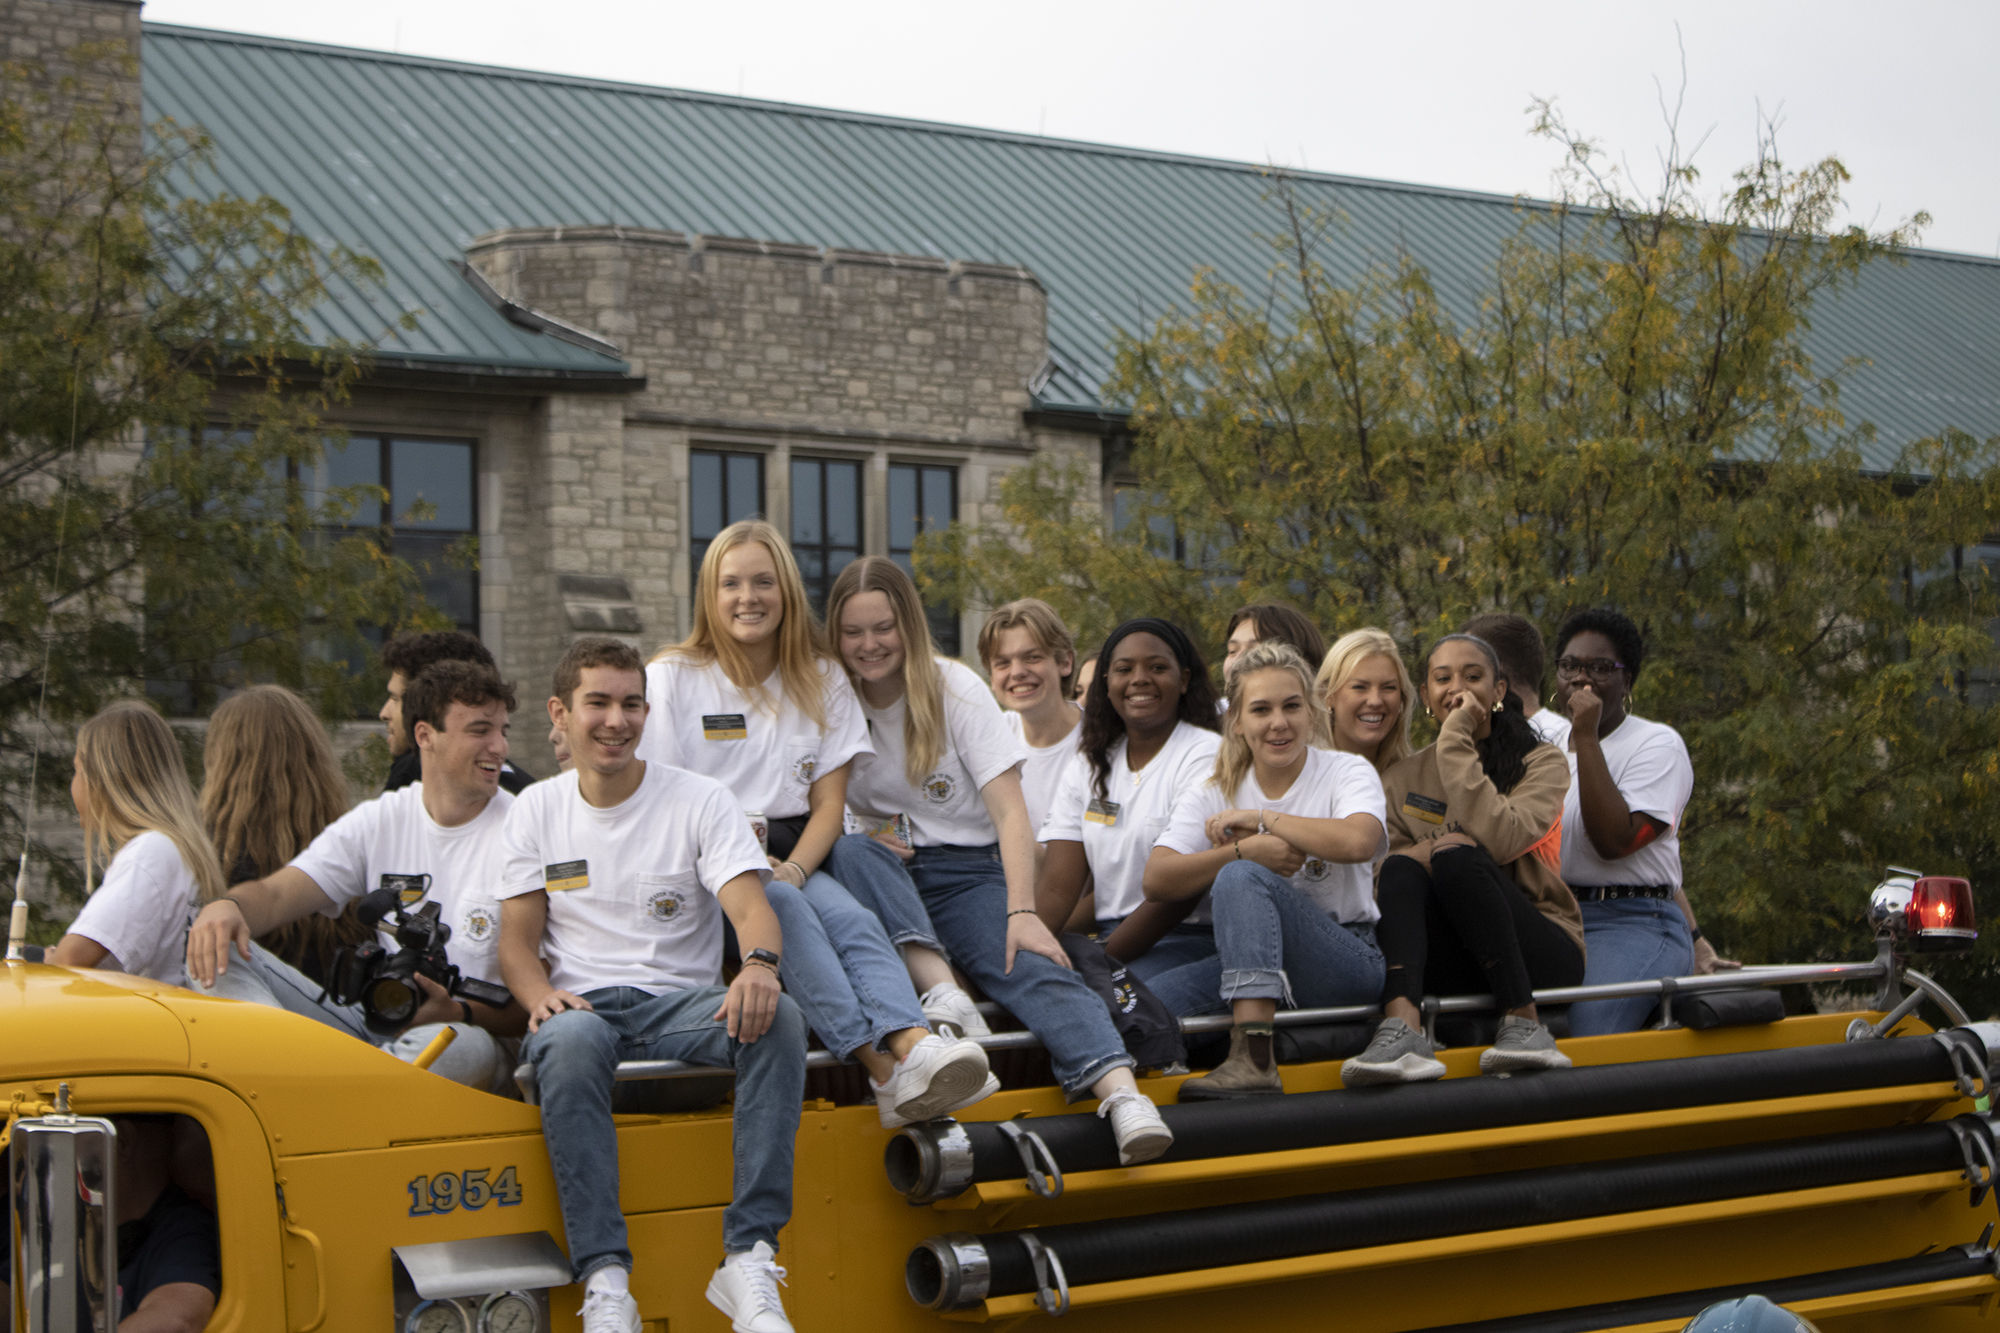 homecoming steering committee members ride in a fire truck and smile